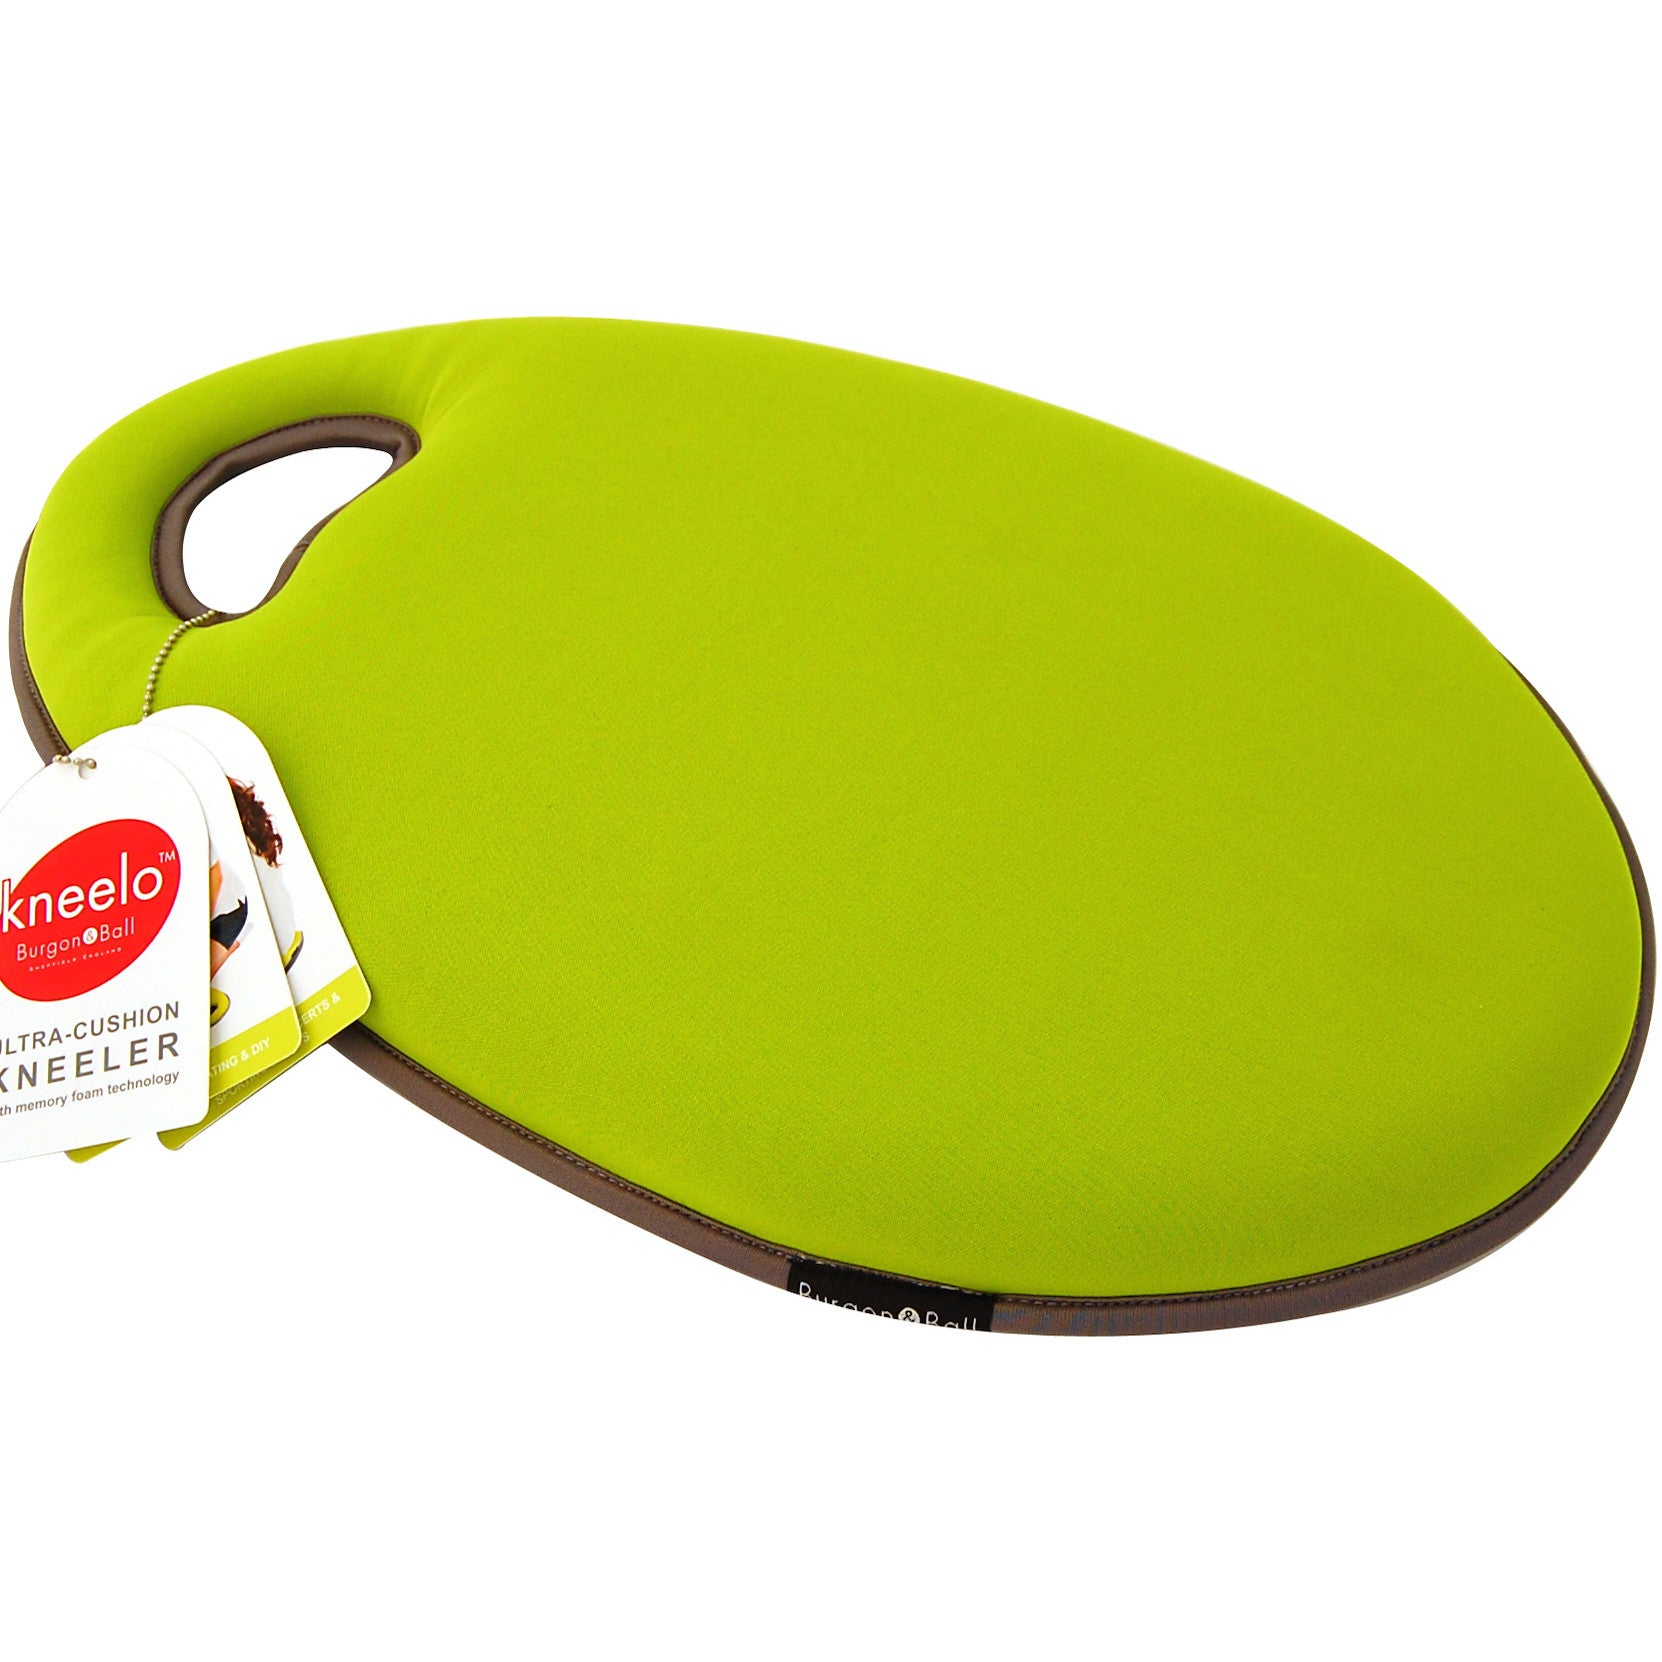 Kneelo® Kneeler - Gooseberry - The Potting Shed Garden Tools